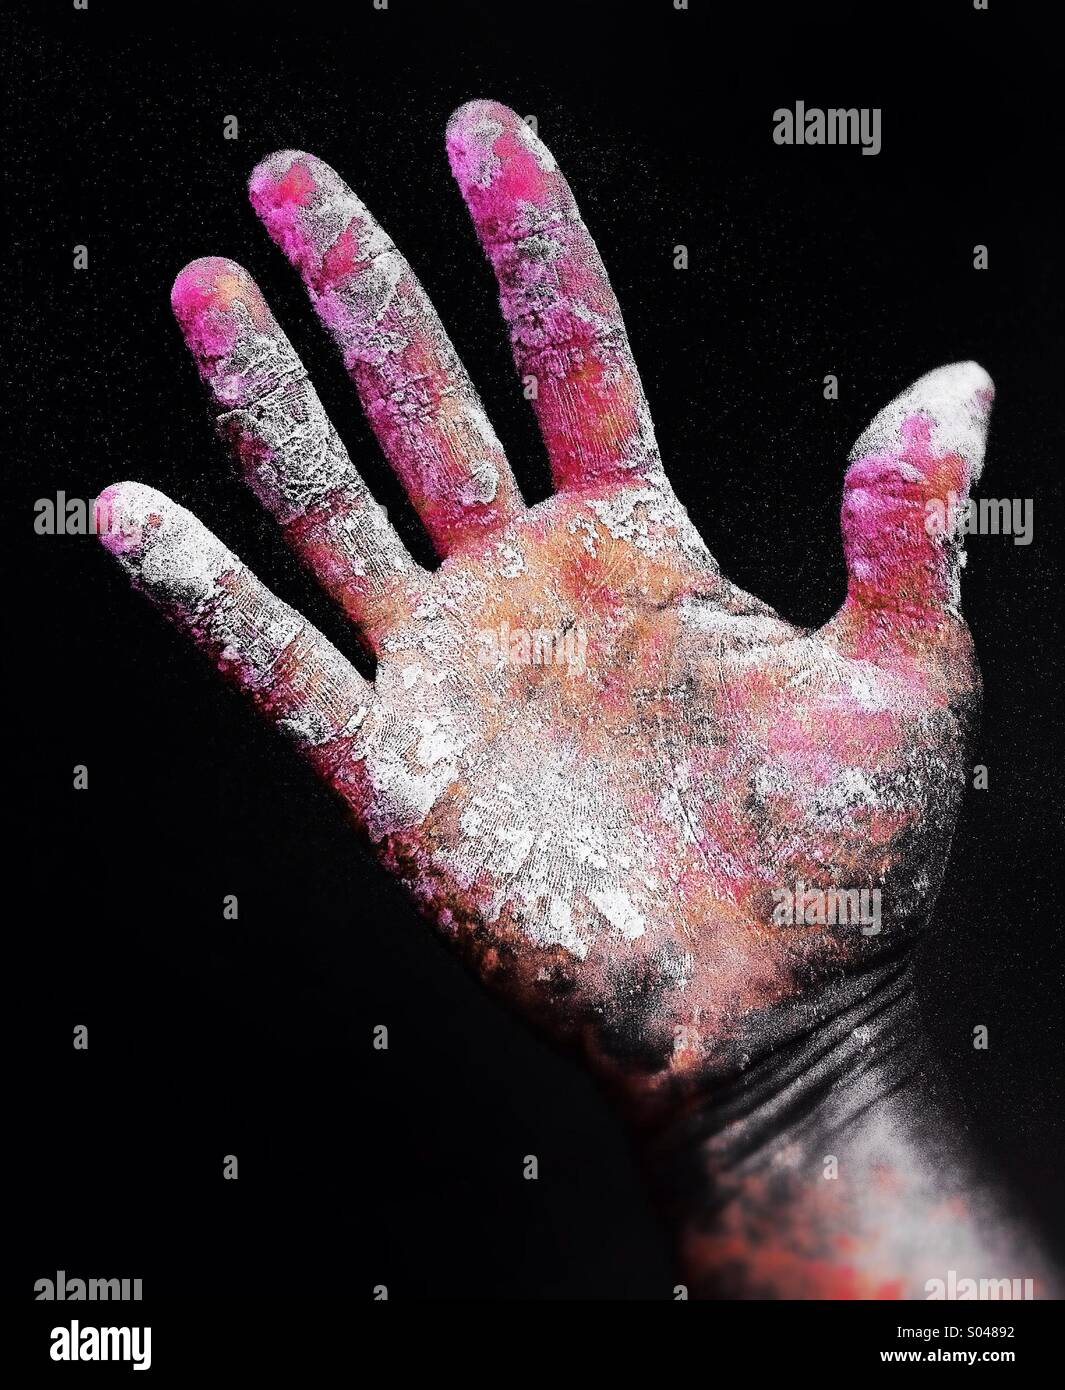 Colorful and dirty hand - Stock Image